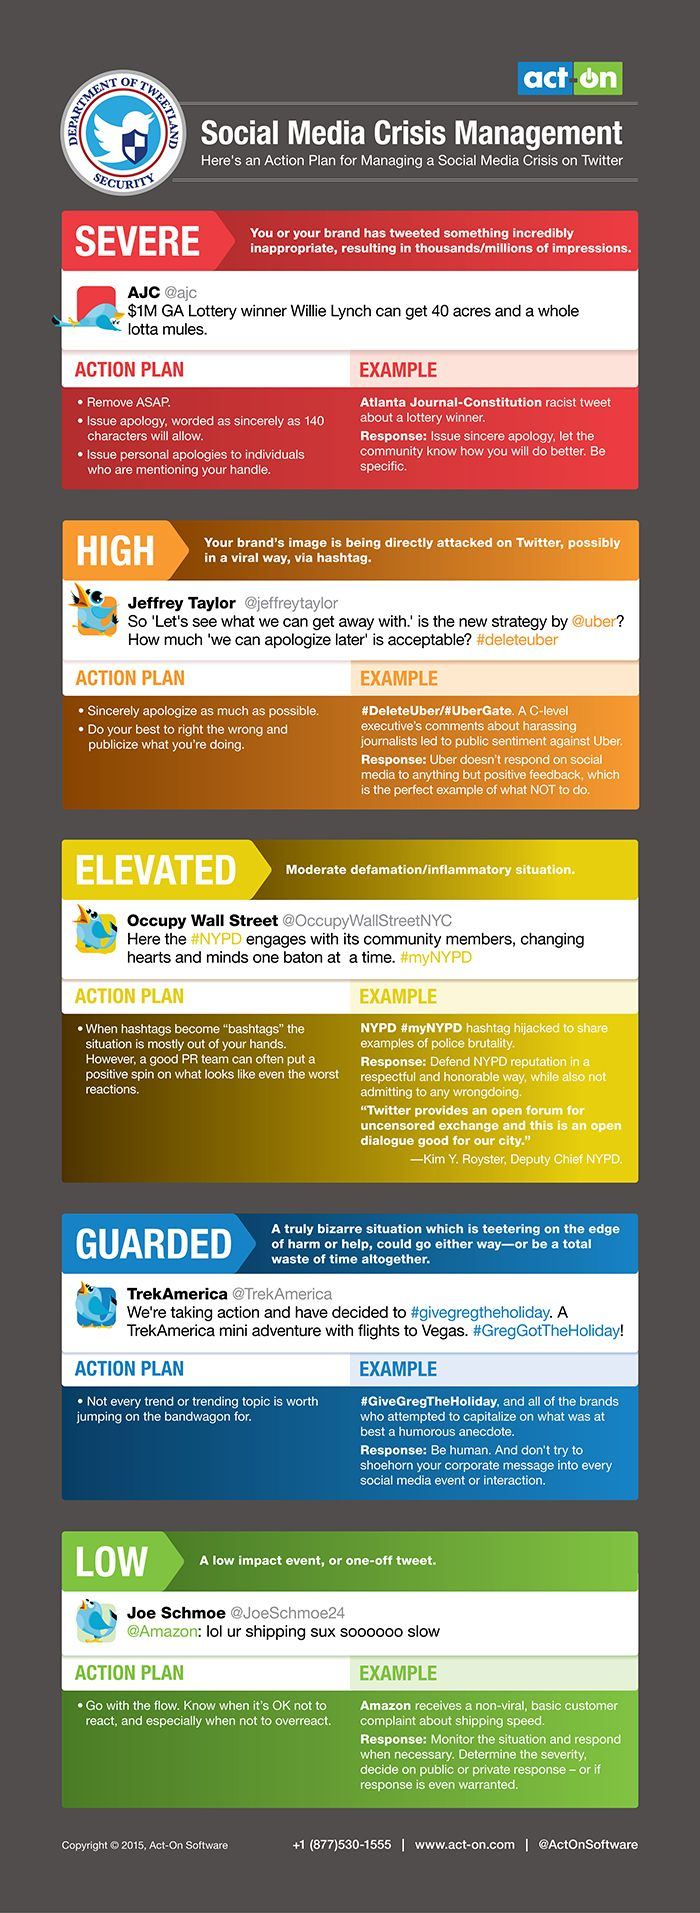 Social Media Crisis Management [Infographic] - The fine folks at ActOn Software have put together this infographic outlining five levels of social media crises, from Low (a customer posts a snarky tweet about your business) to Severe (you or someone representing your business tweets something offensive and incendiary). | via @borntobesocial